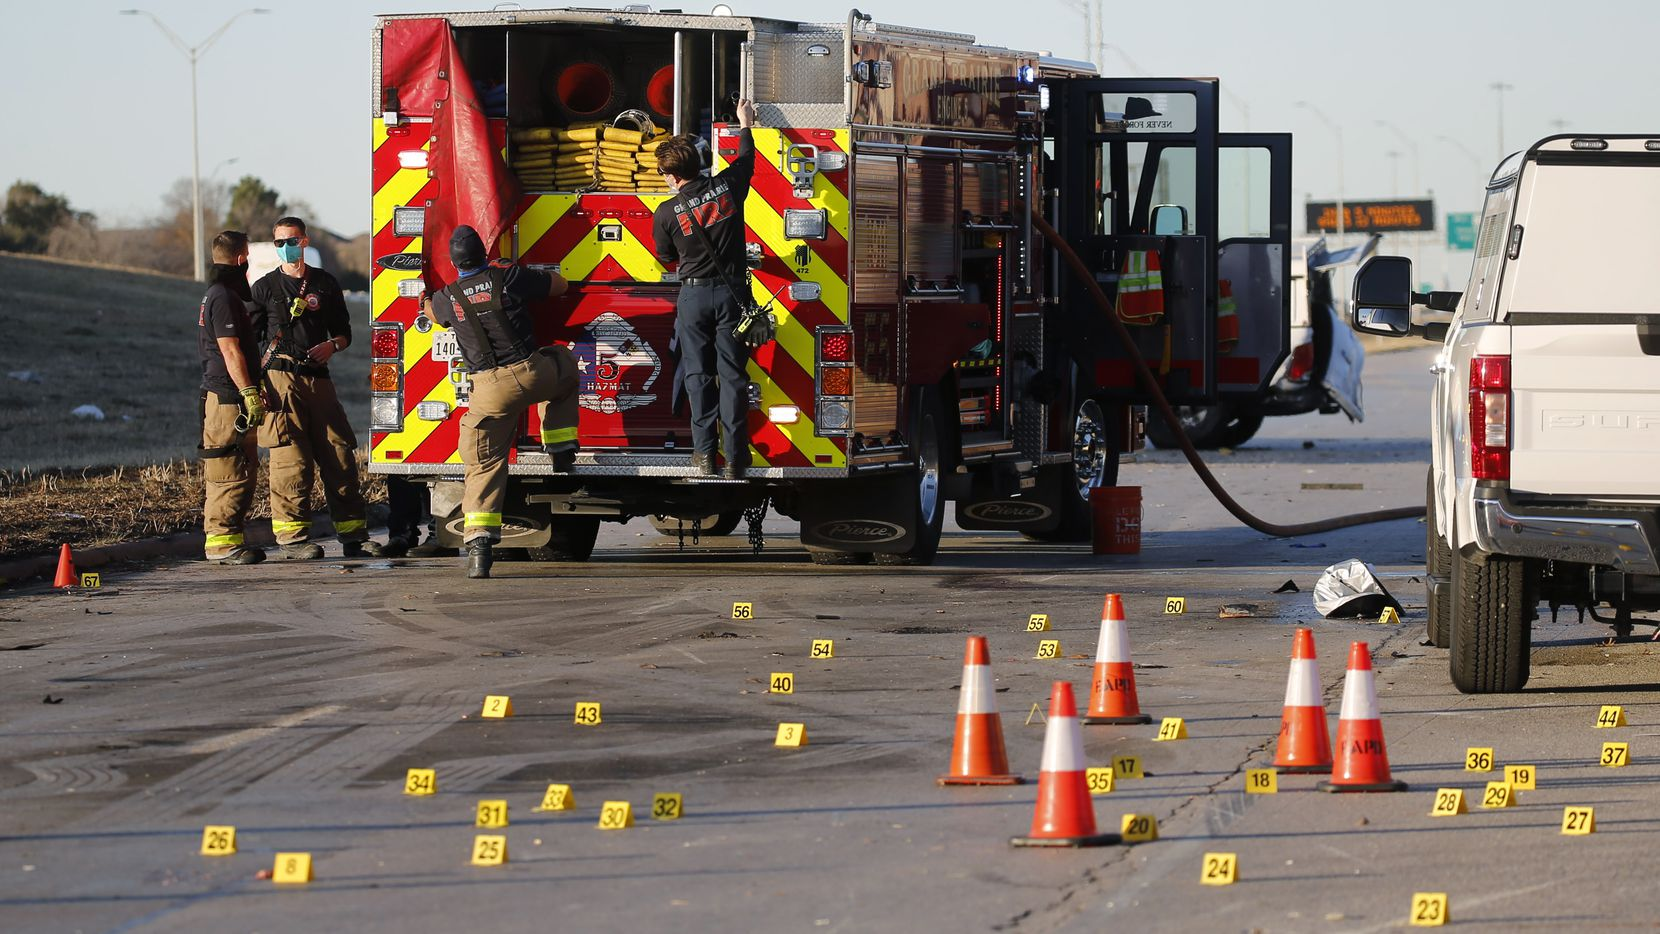 Grand Prairie firefighters at the scene of a fatal plane crash near the intersection of Mayfield Road and Highway 360 on Monday, December 21, 2020 in Grand Prairie, Texas.